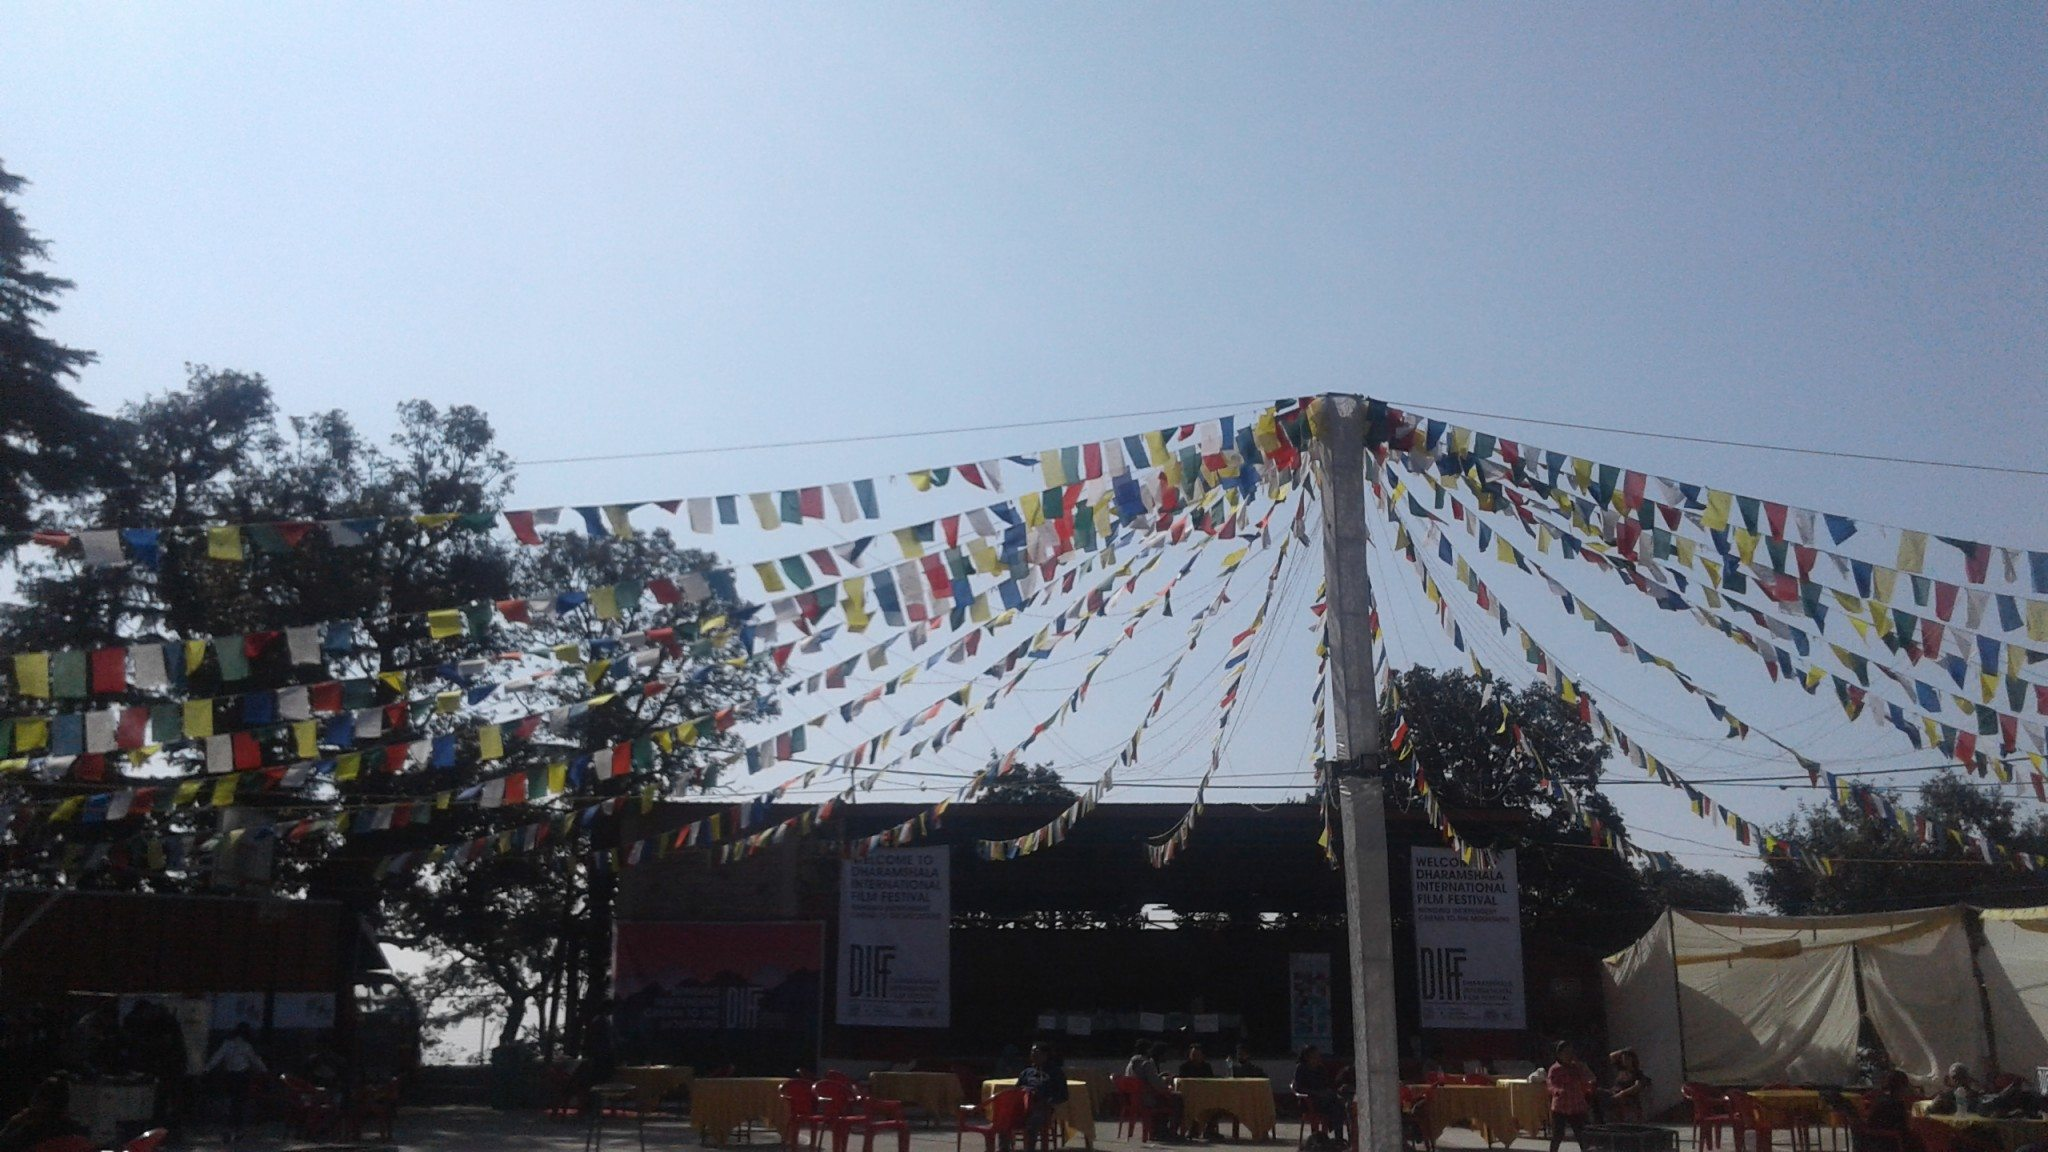 Buddhist prayer flags hanging from a tall pole in the centre of a courtyard with a stage in the background.